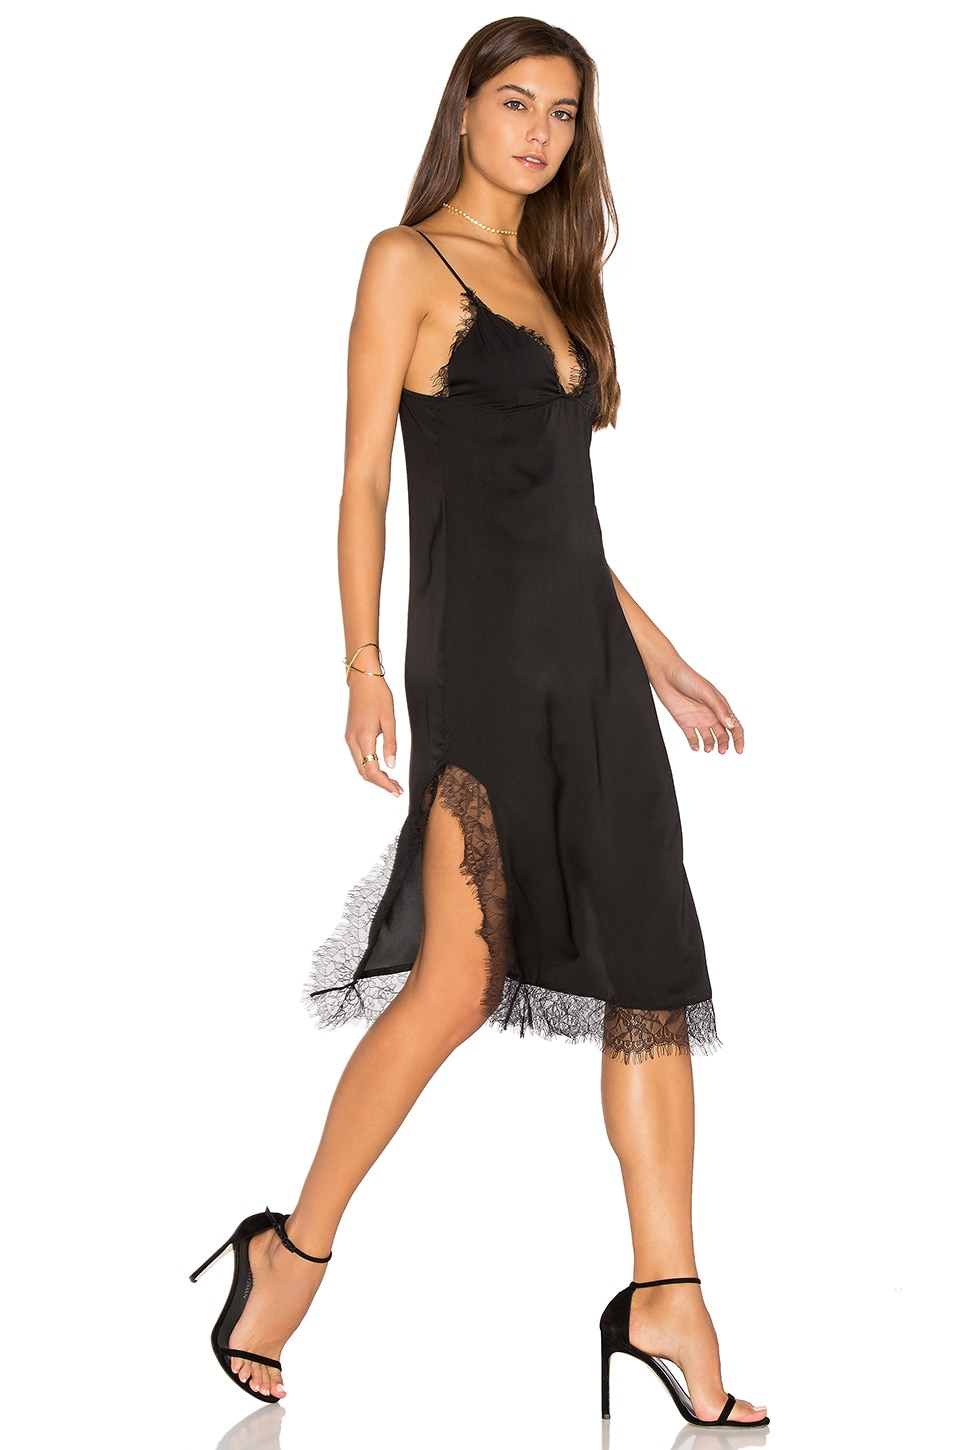 Parlour Lace Slip Dress by Capulet